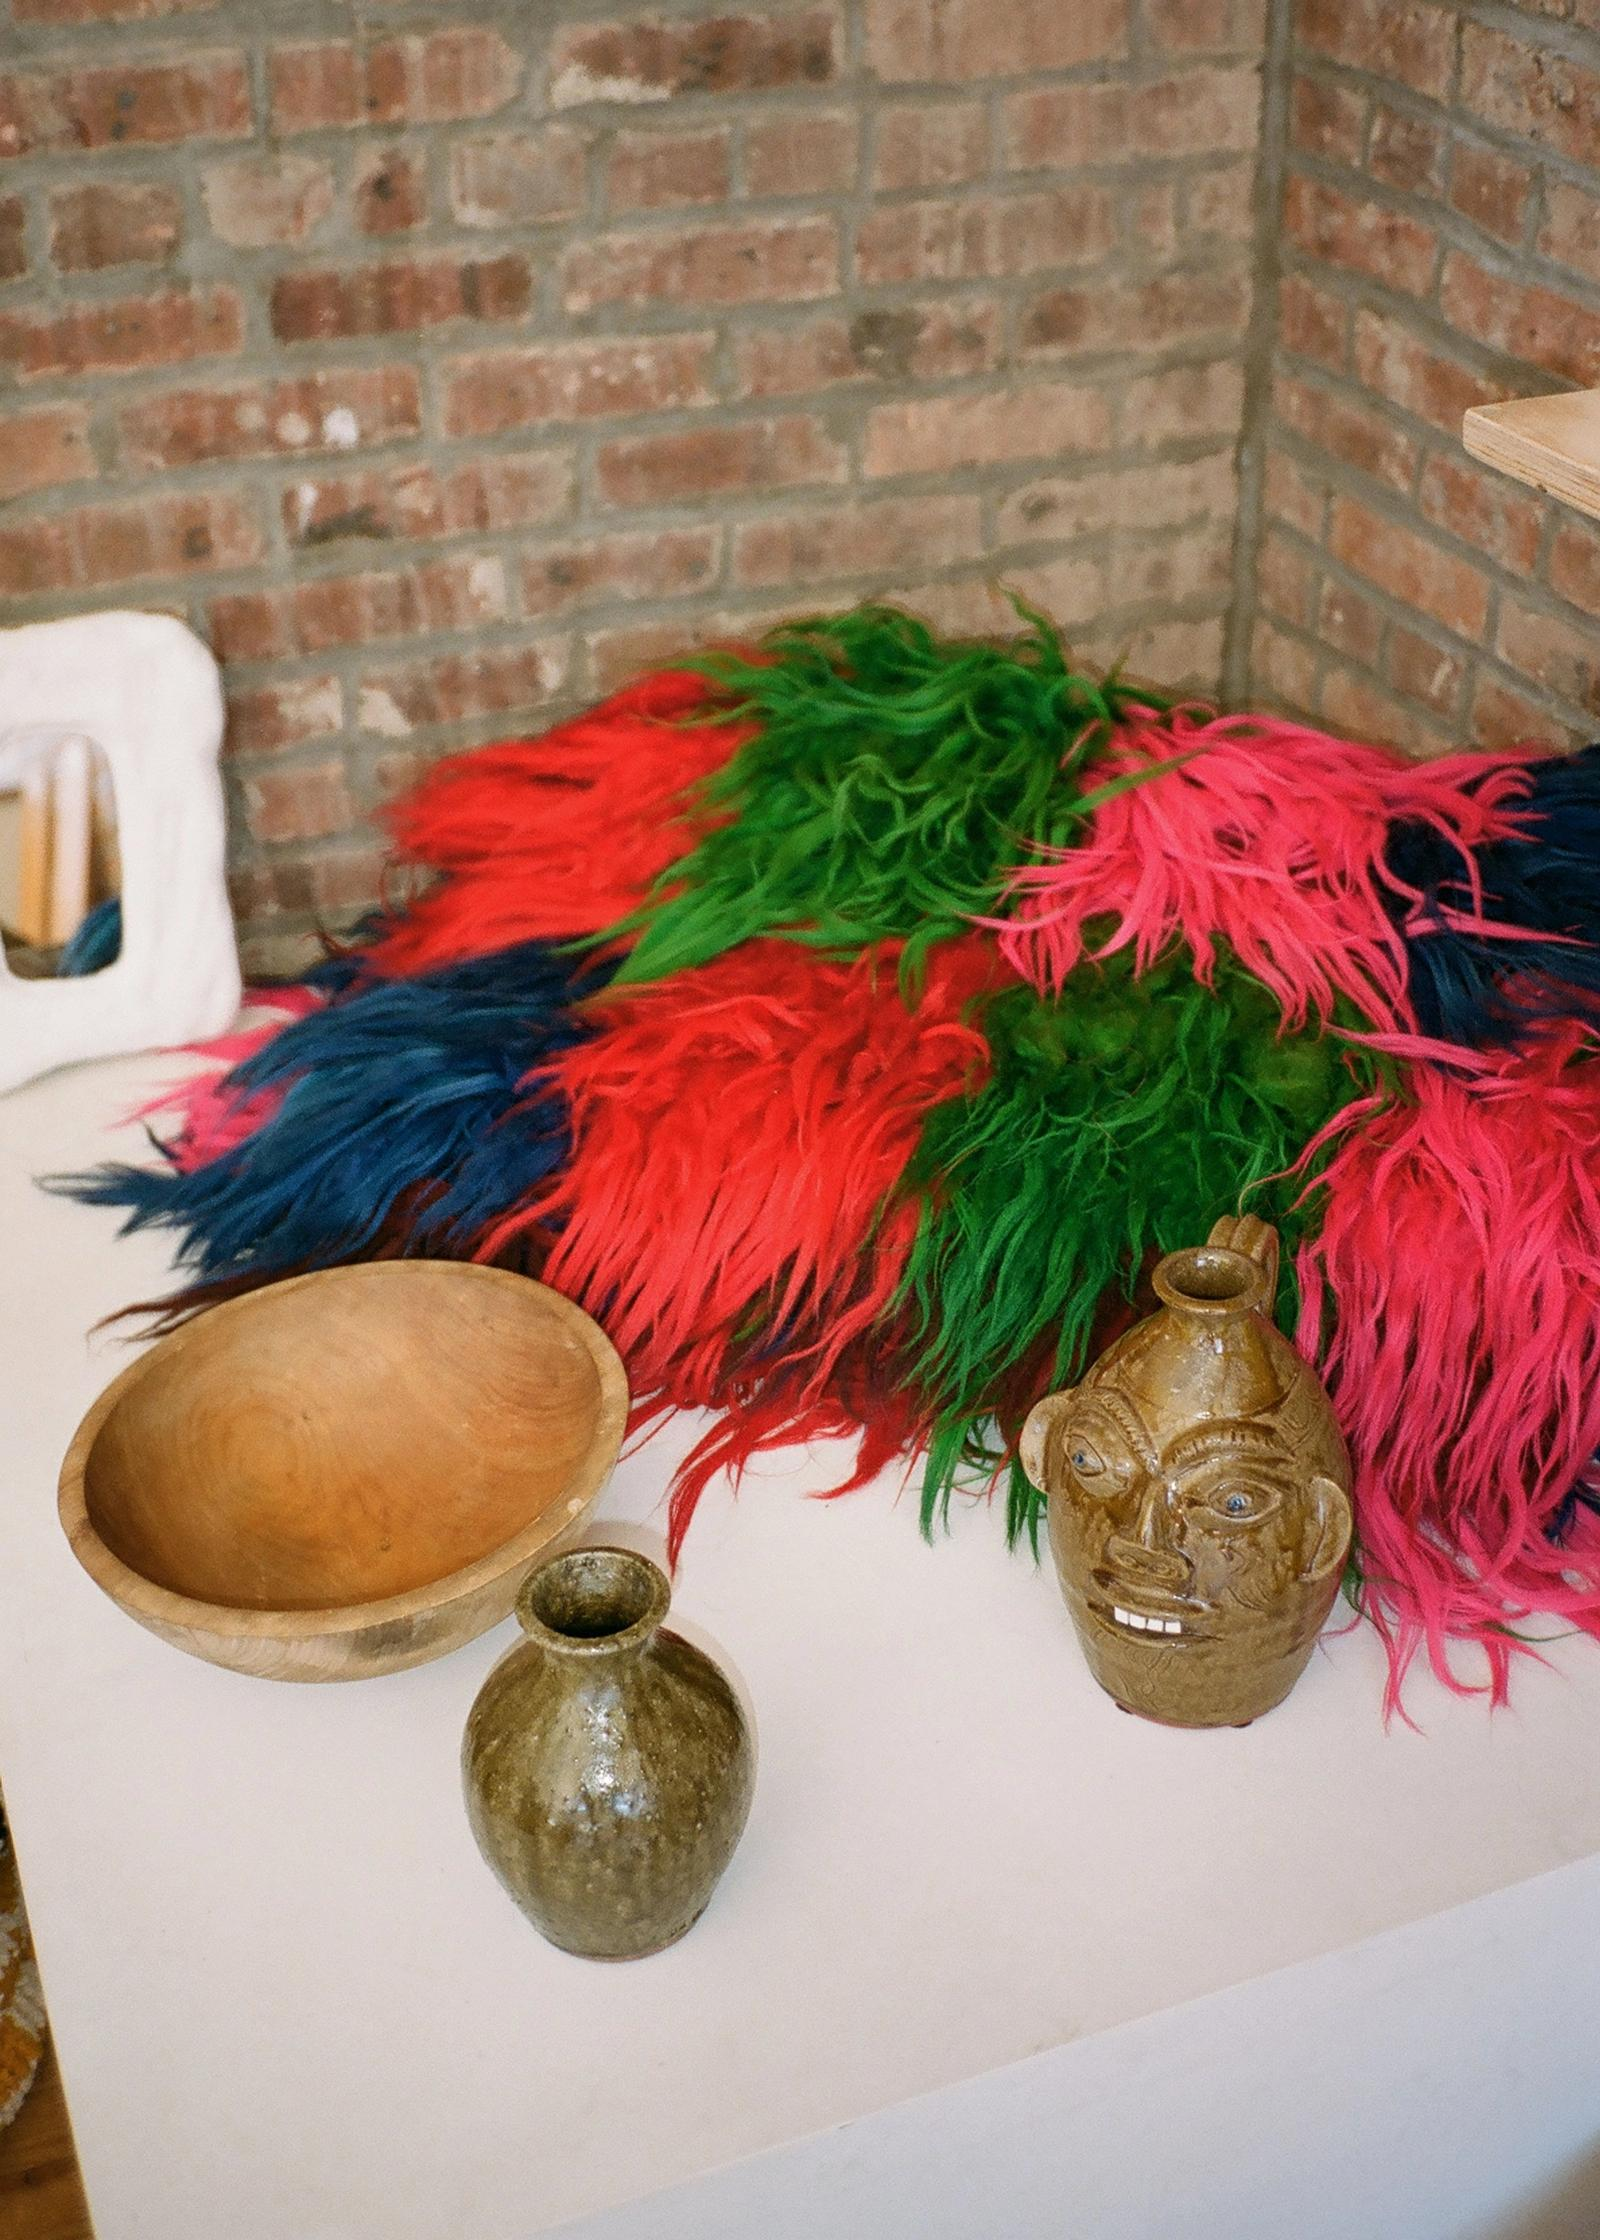 feathers and vases on a table at raini home